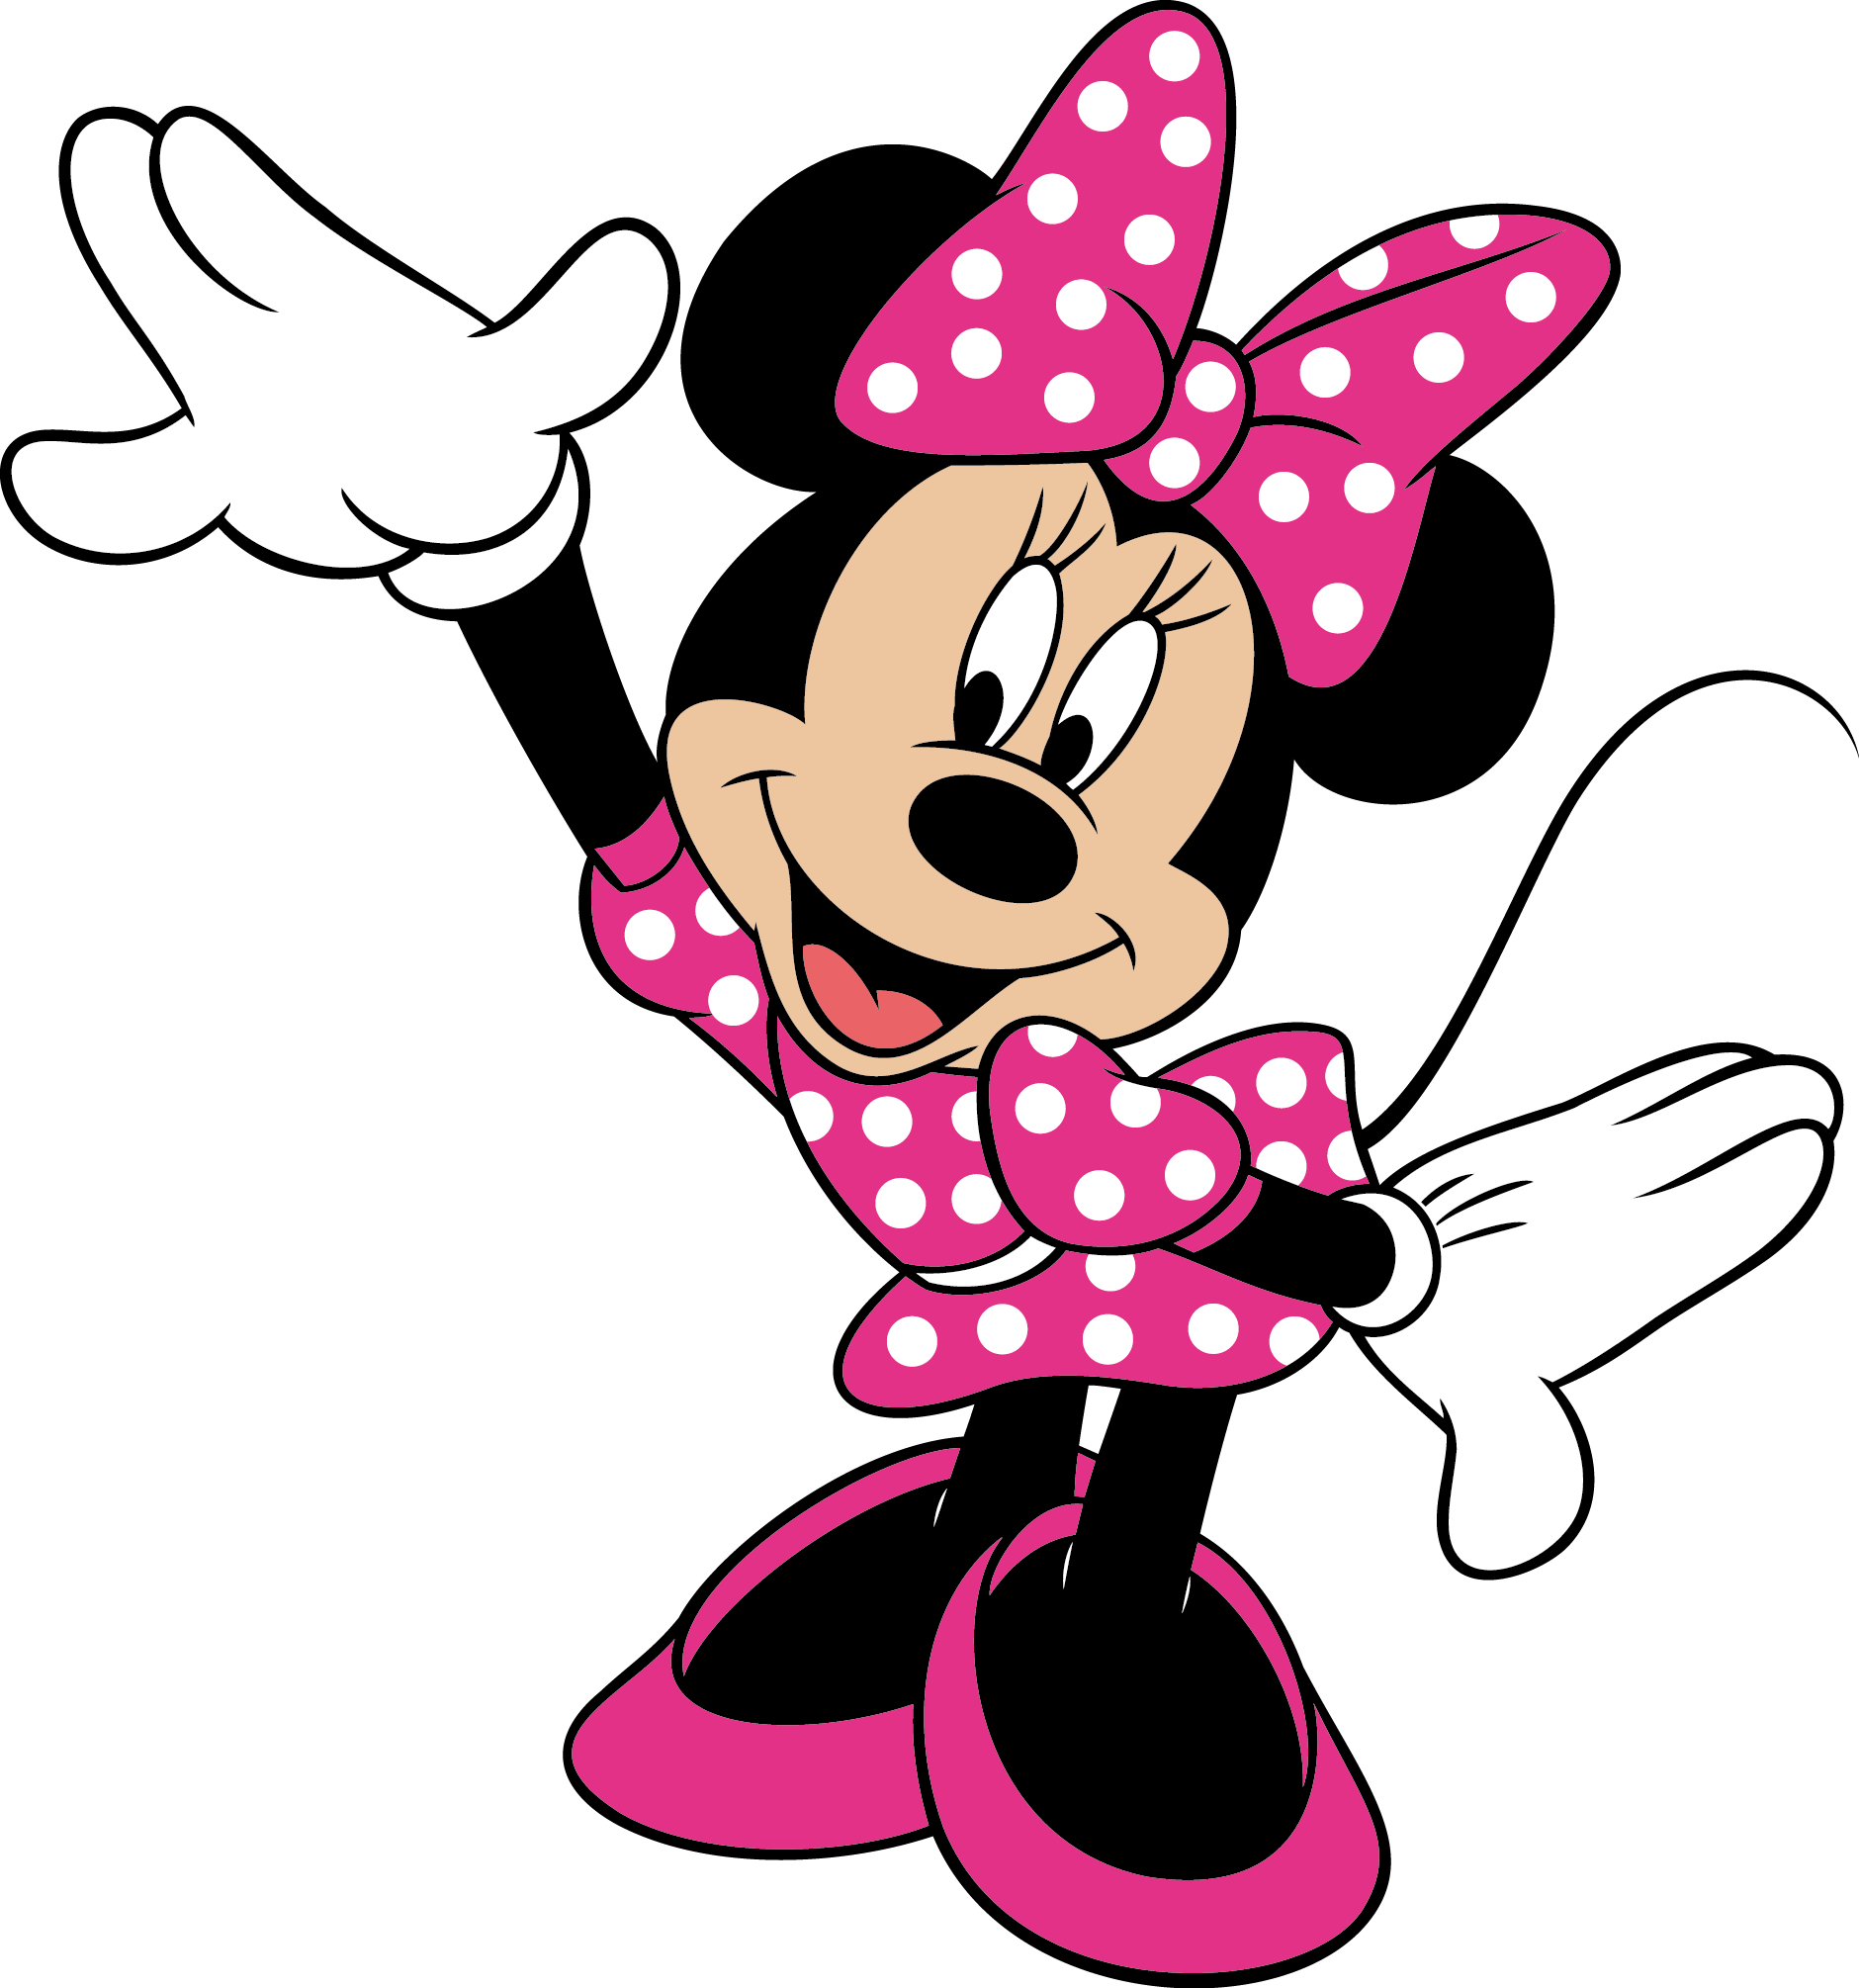 minnieprueba.png (1880×2010) | MICKEY & MINNIE MOUSE | Pinterest